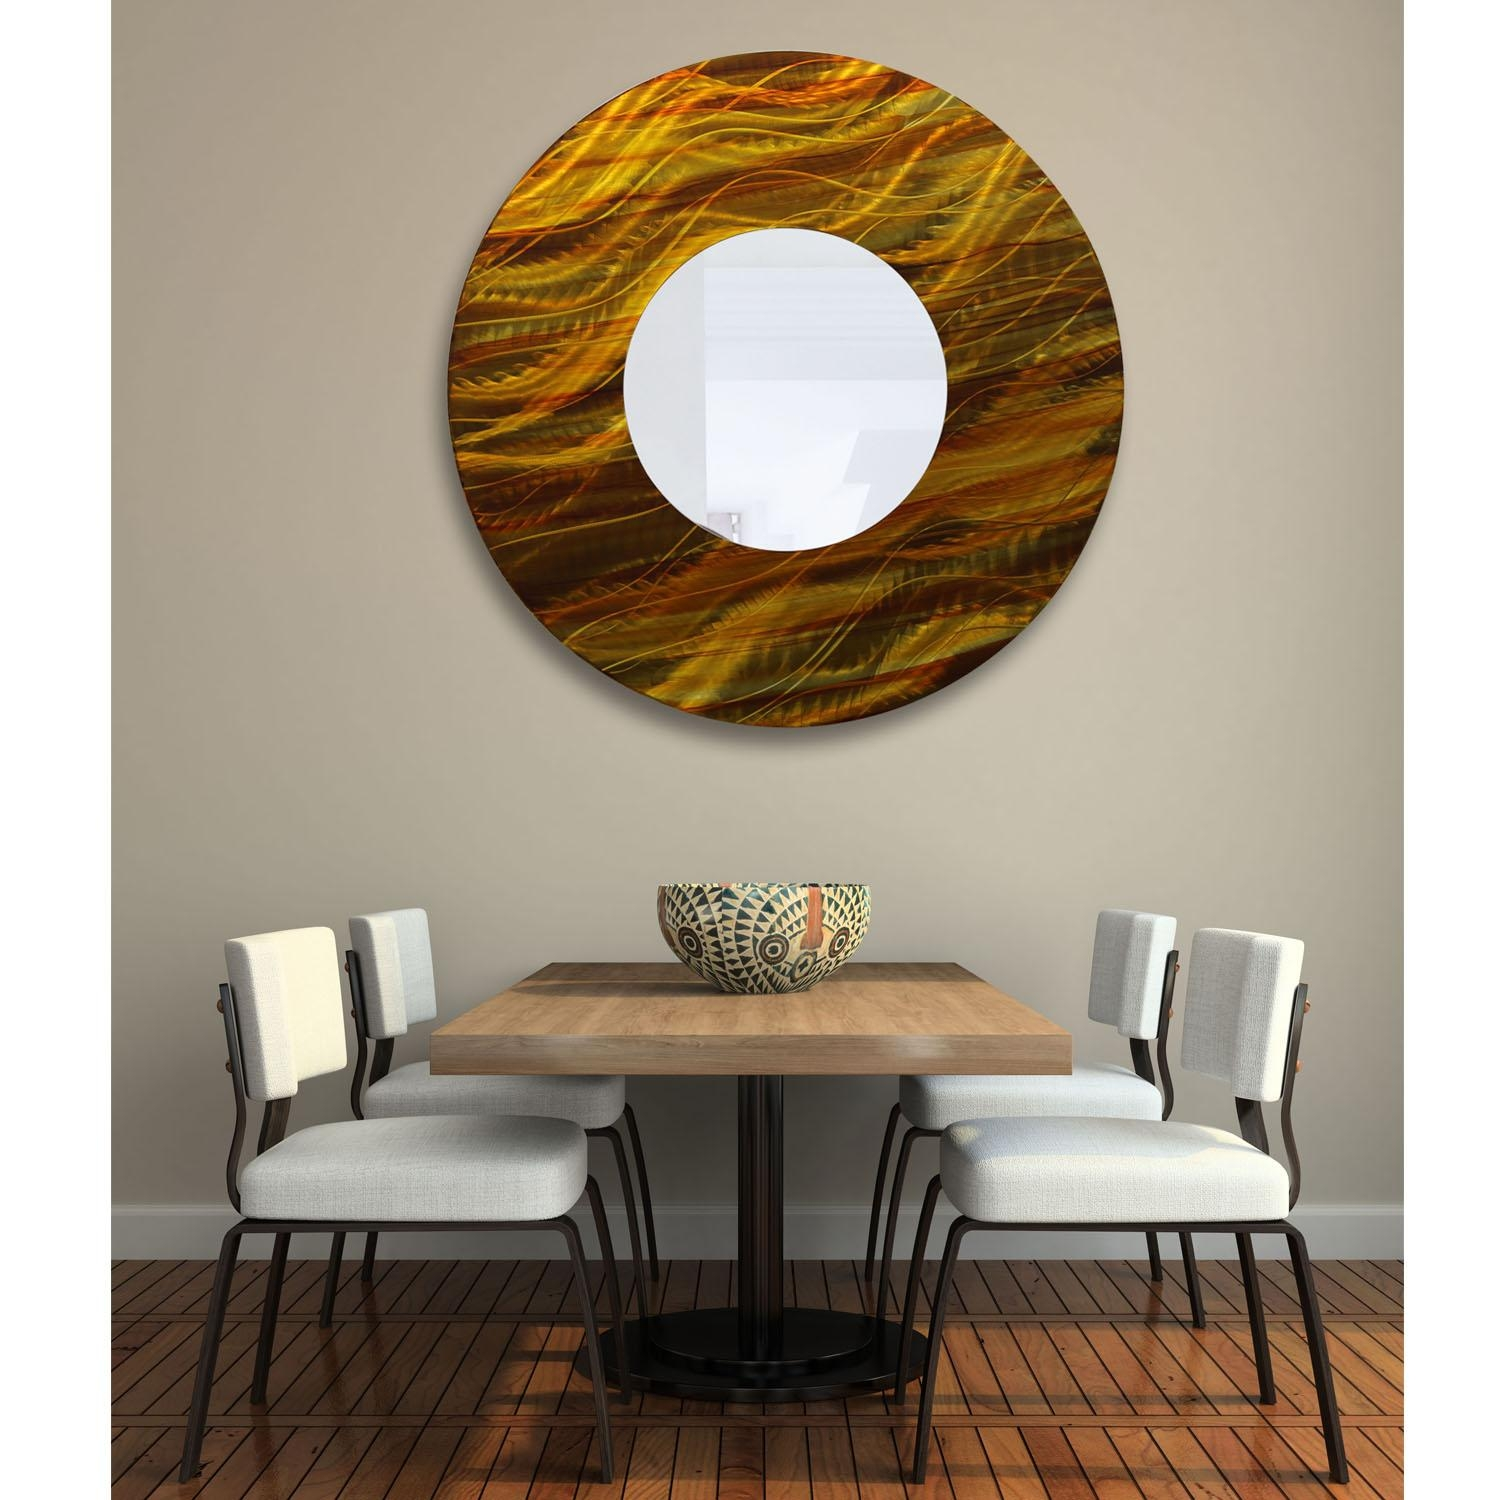 Mirror 115 – Gold And Amber Abstract Metal Wall Art Mirror Accent Pertaining To Abstract Mirror Wall Art (Image 12 of 20)